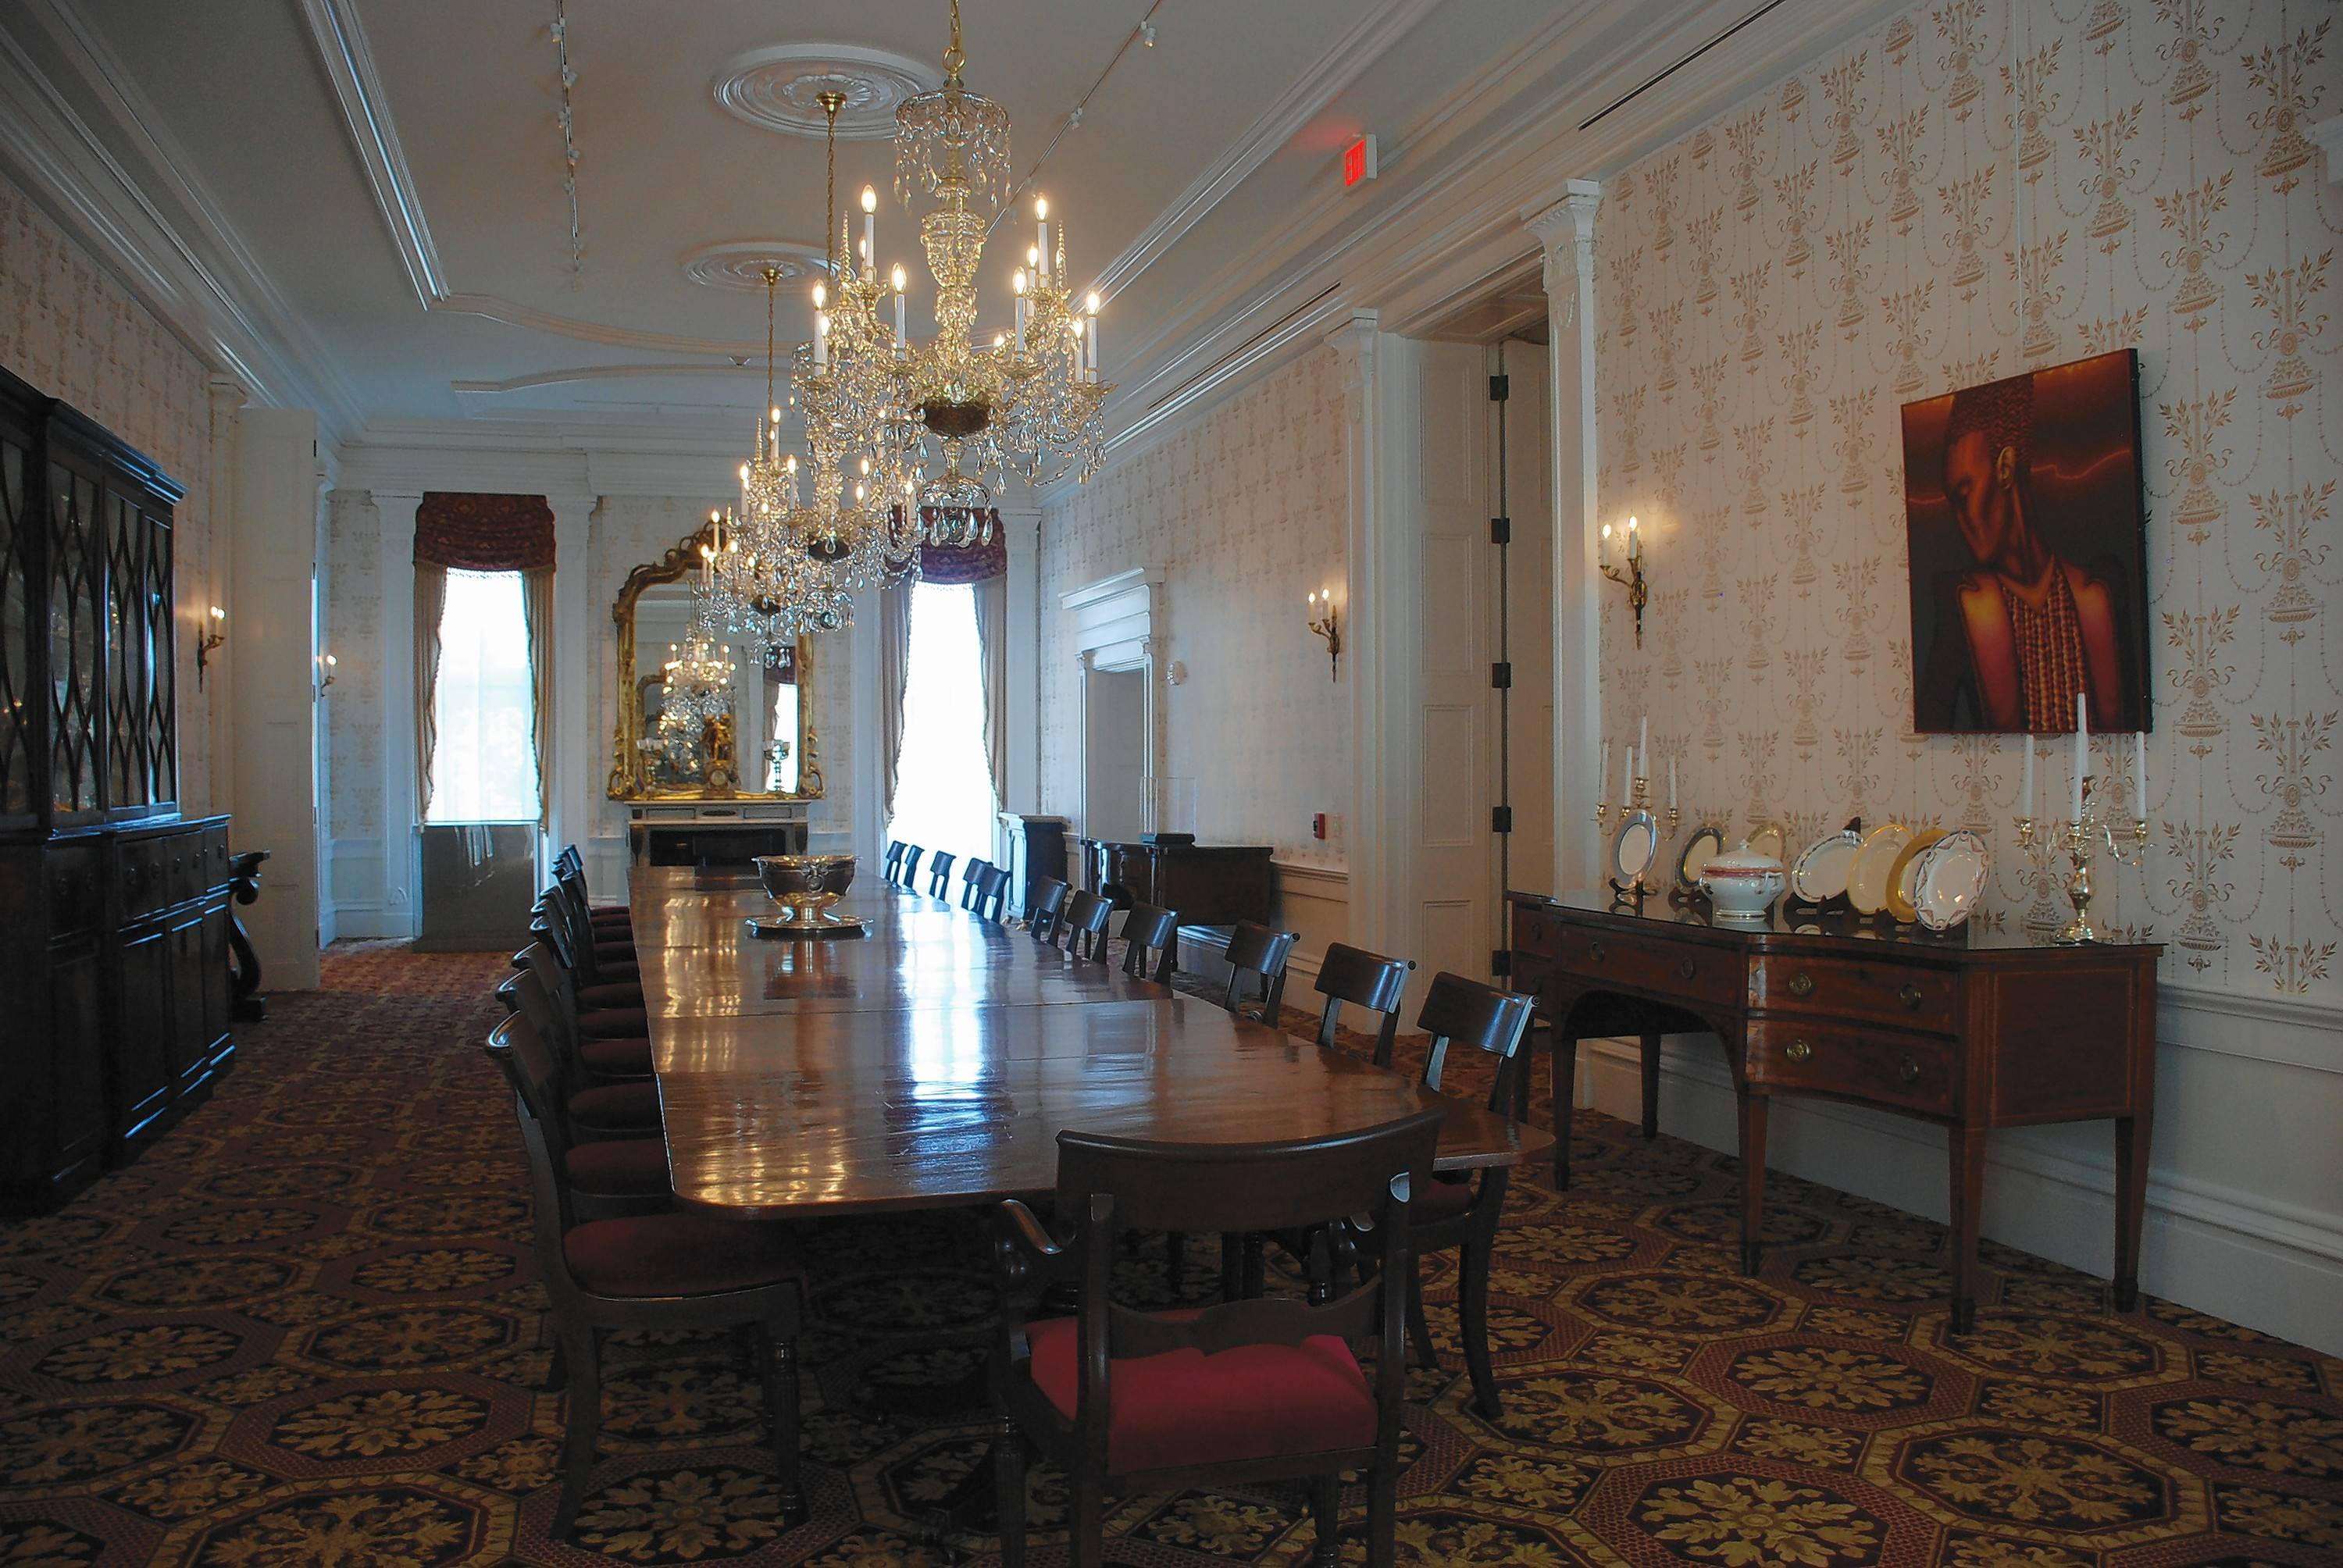 The mansion's 24-seat dining room has a sideboard featuring a display of china used by Abraham Lincoln (although he was never governor) and various governors to present day. There is a complete silver tea service and other silver pieces crafted for the USS Illinois during the 1940s. The ship was never finished so the Navy donated the silver set to the Governor's Mansion.